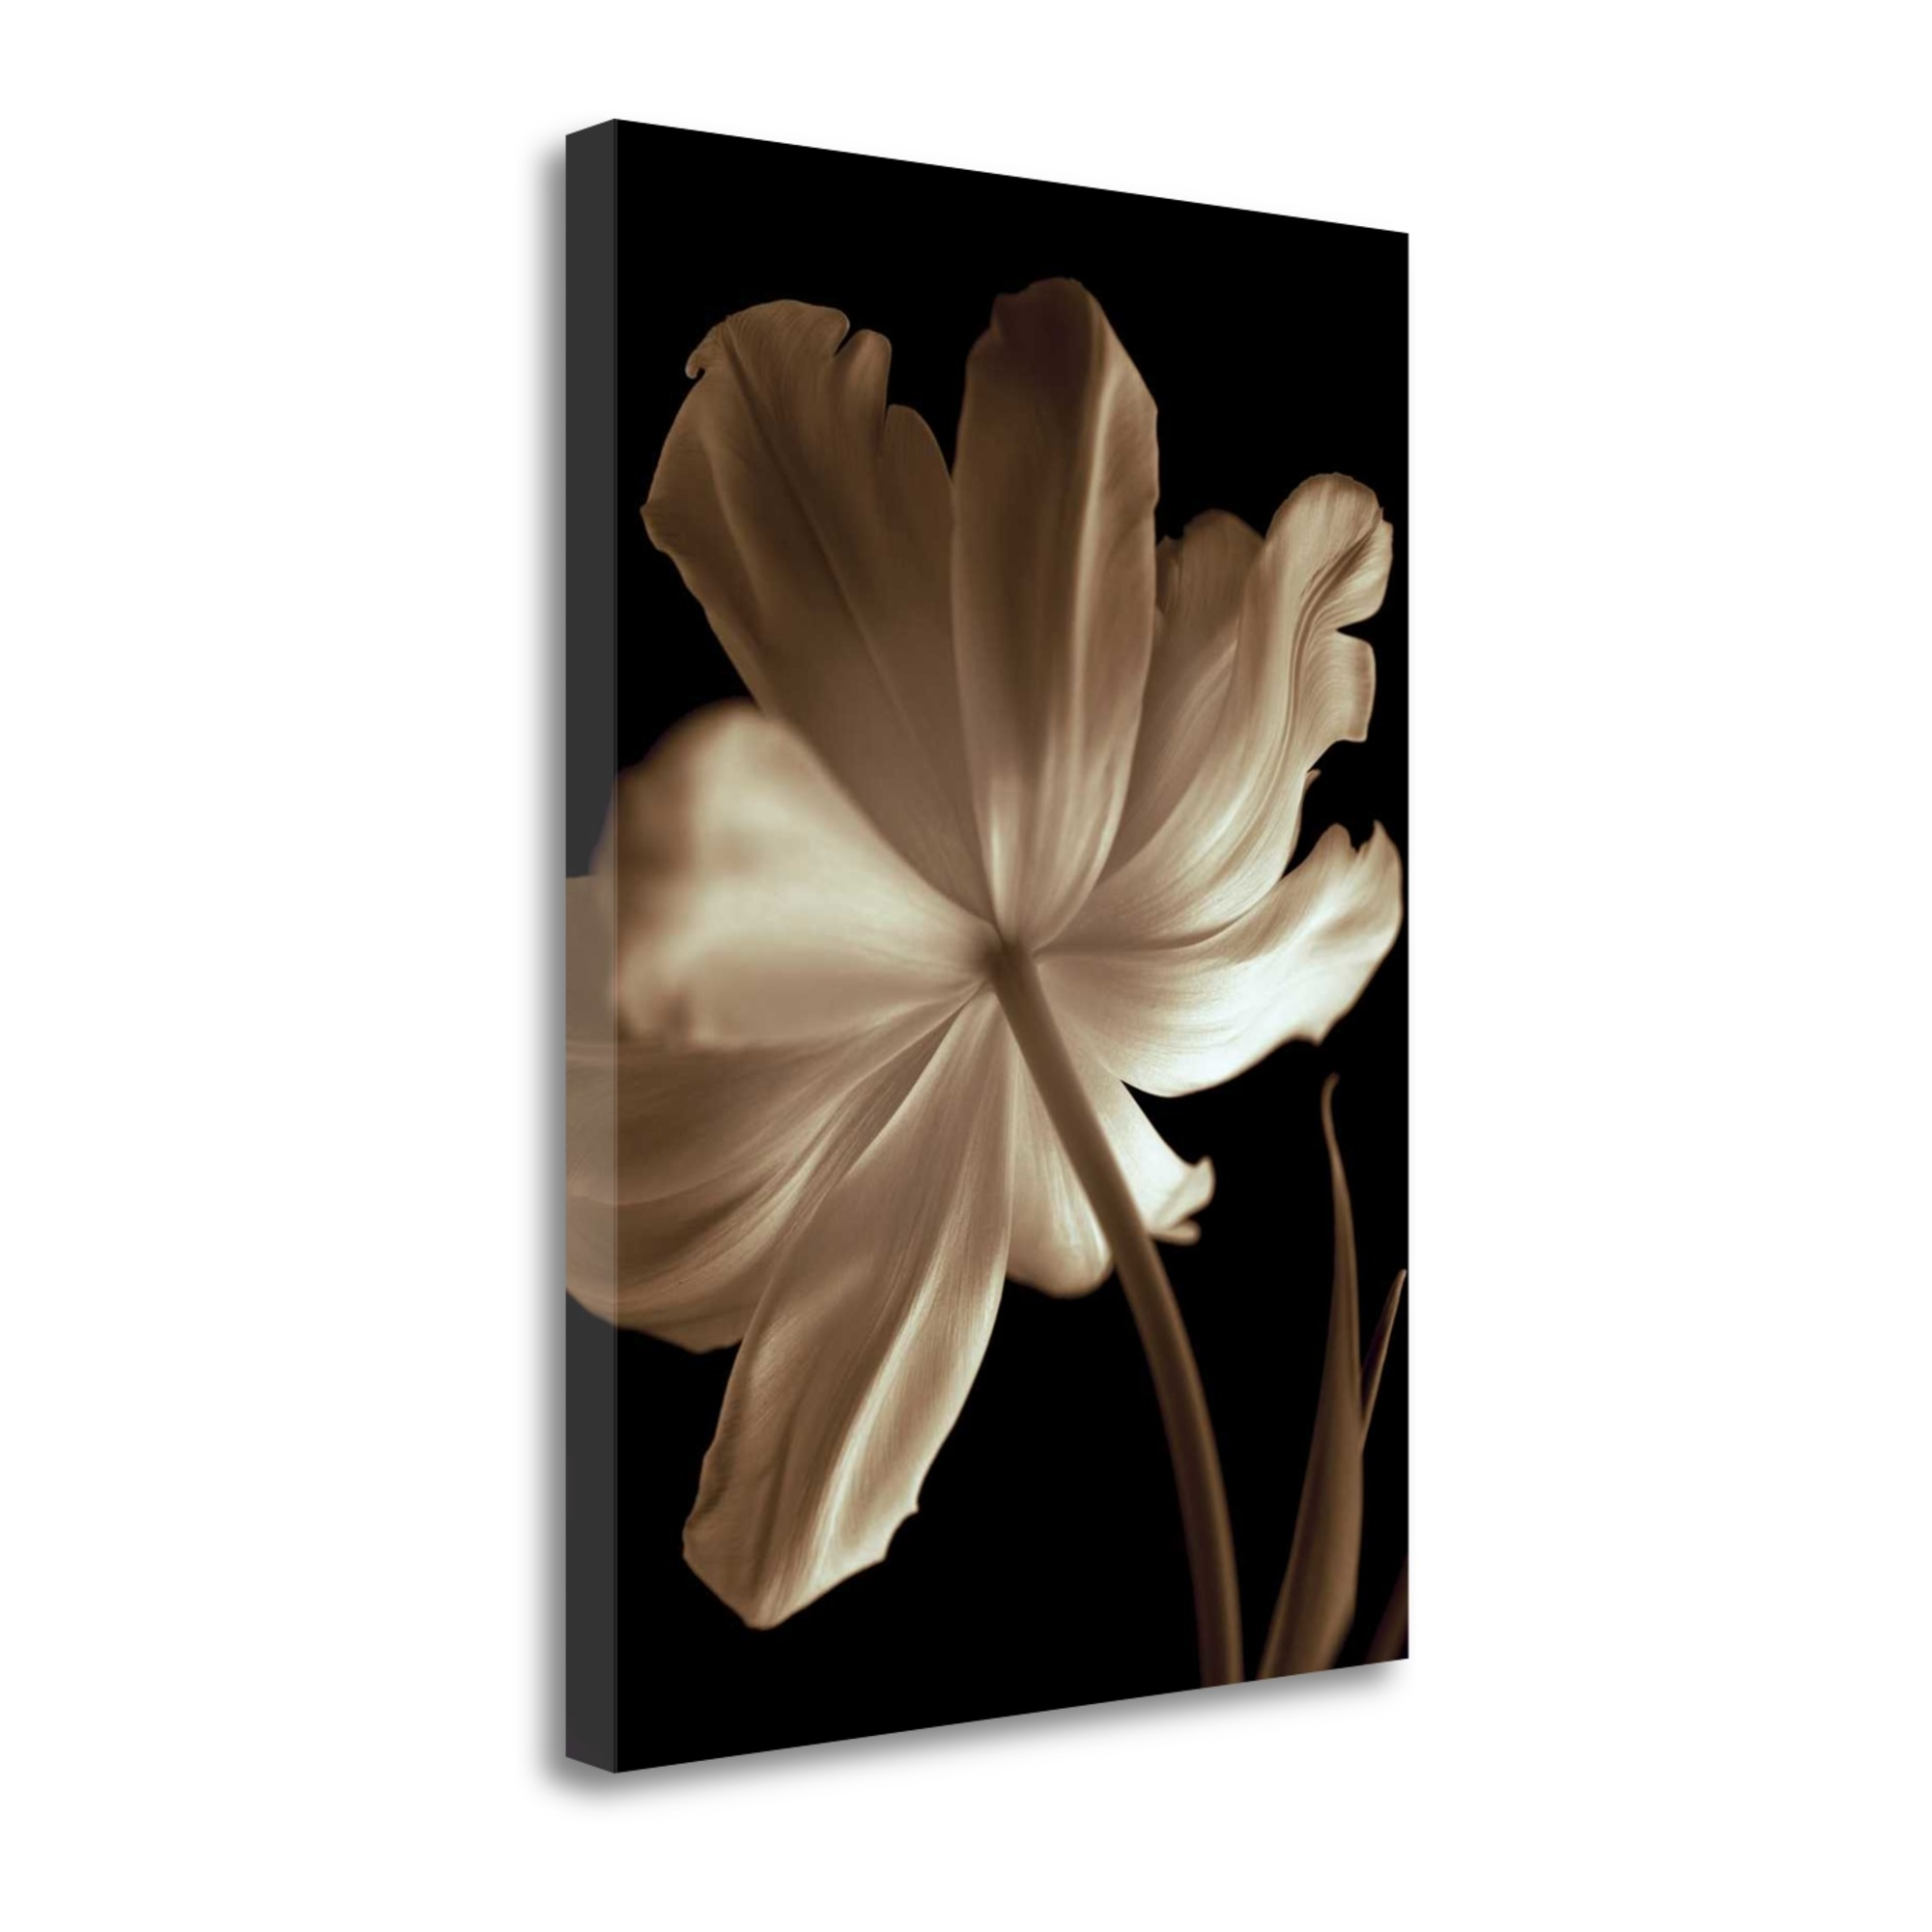 "Champagne Tulip II By Charles Britt, 18"" x 24\"" Fine Art Giclee Print on Gallery Wrap Canvas, Ready to Hang"